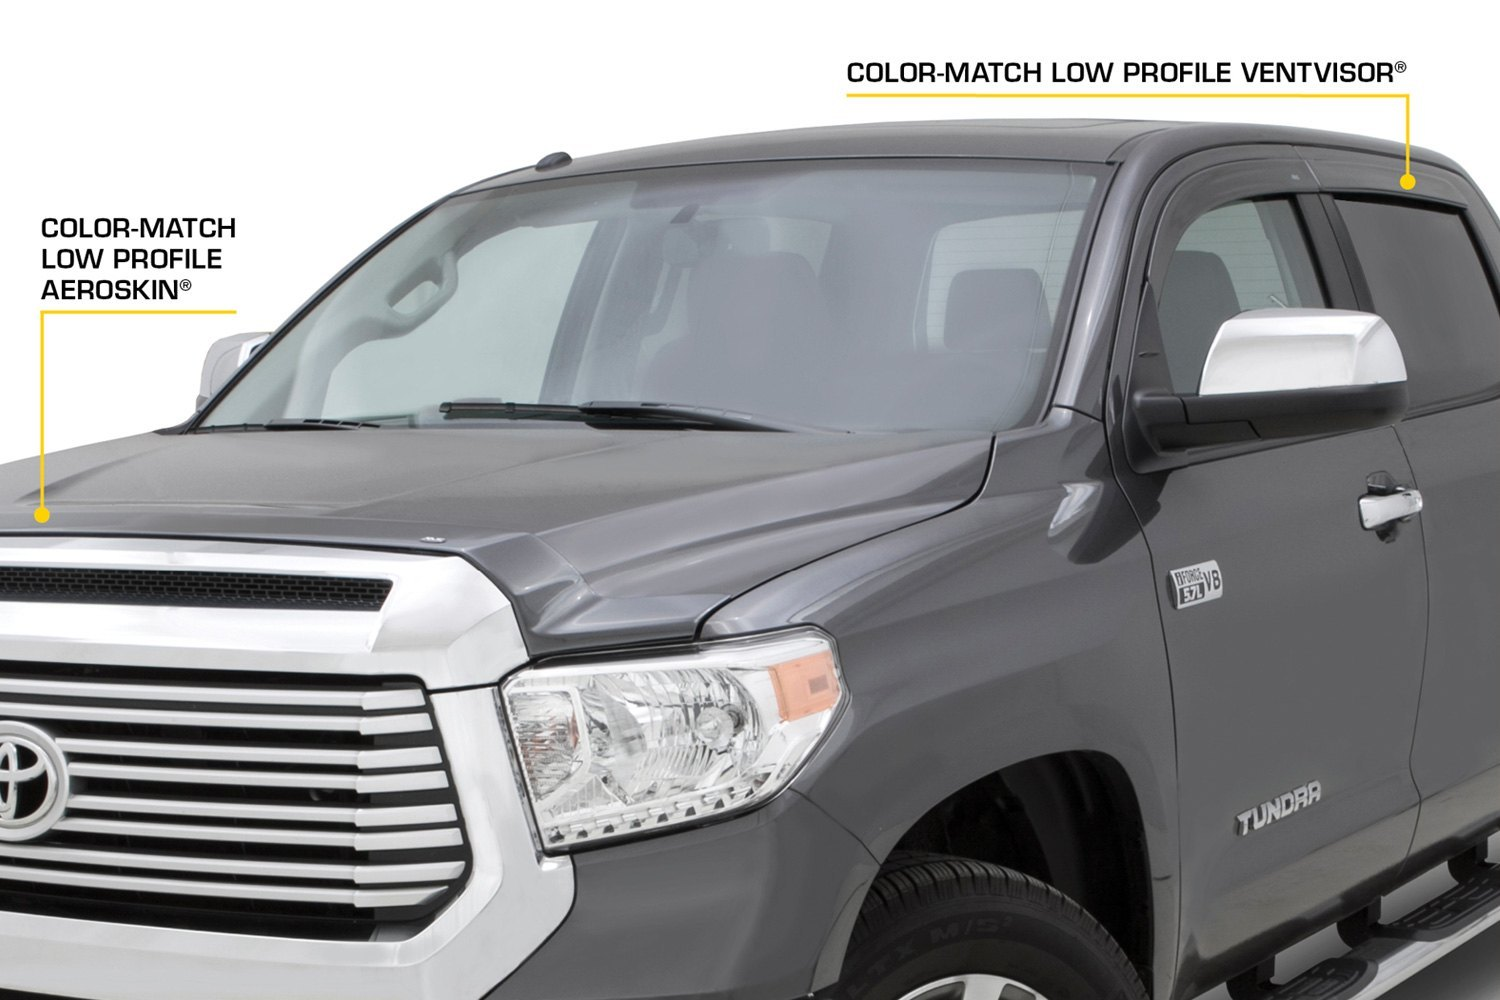 AVS Color Match Low Profile Ventvisor